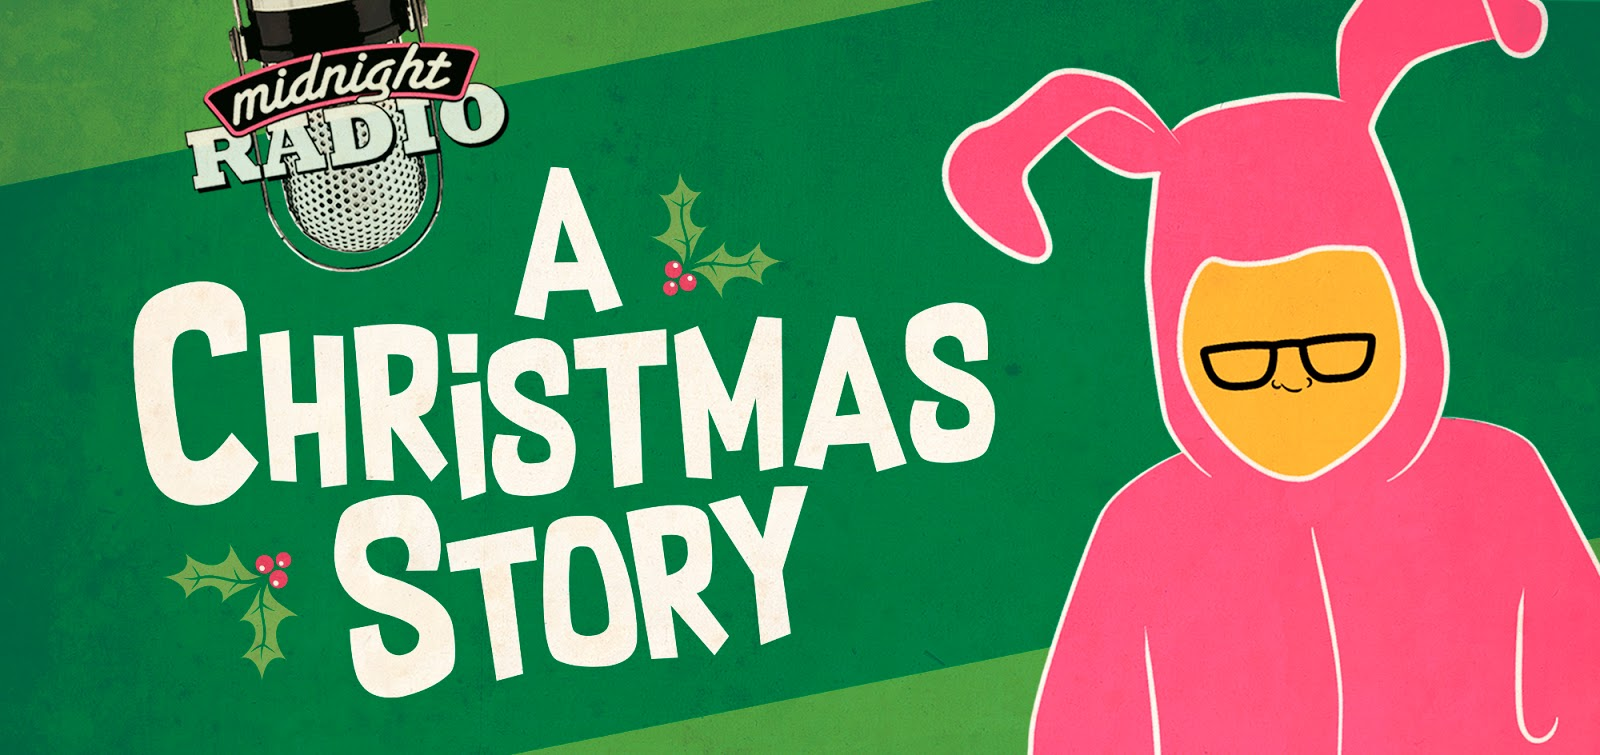 its a christmas tradition for my son and i to watch the 1983 iconic movie a christmas story that takes place on cleveland street indiana in the 1940s - What Year Did A Christmas Story Take Place